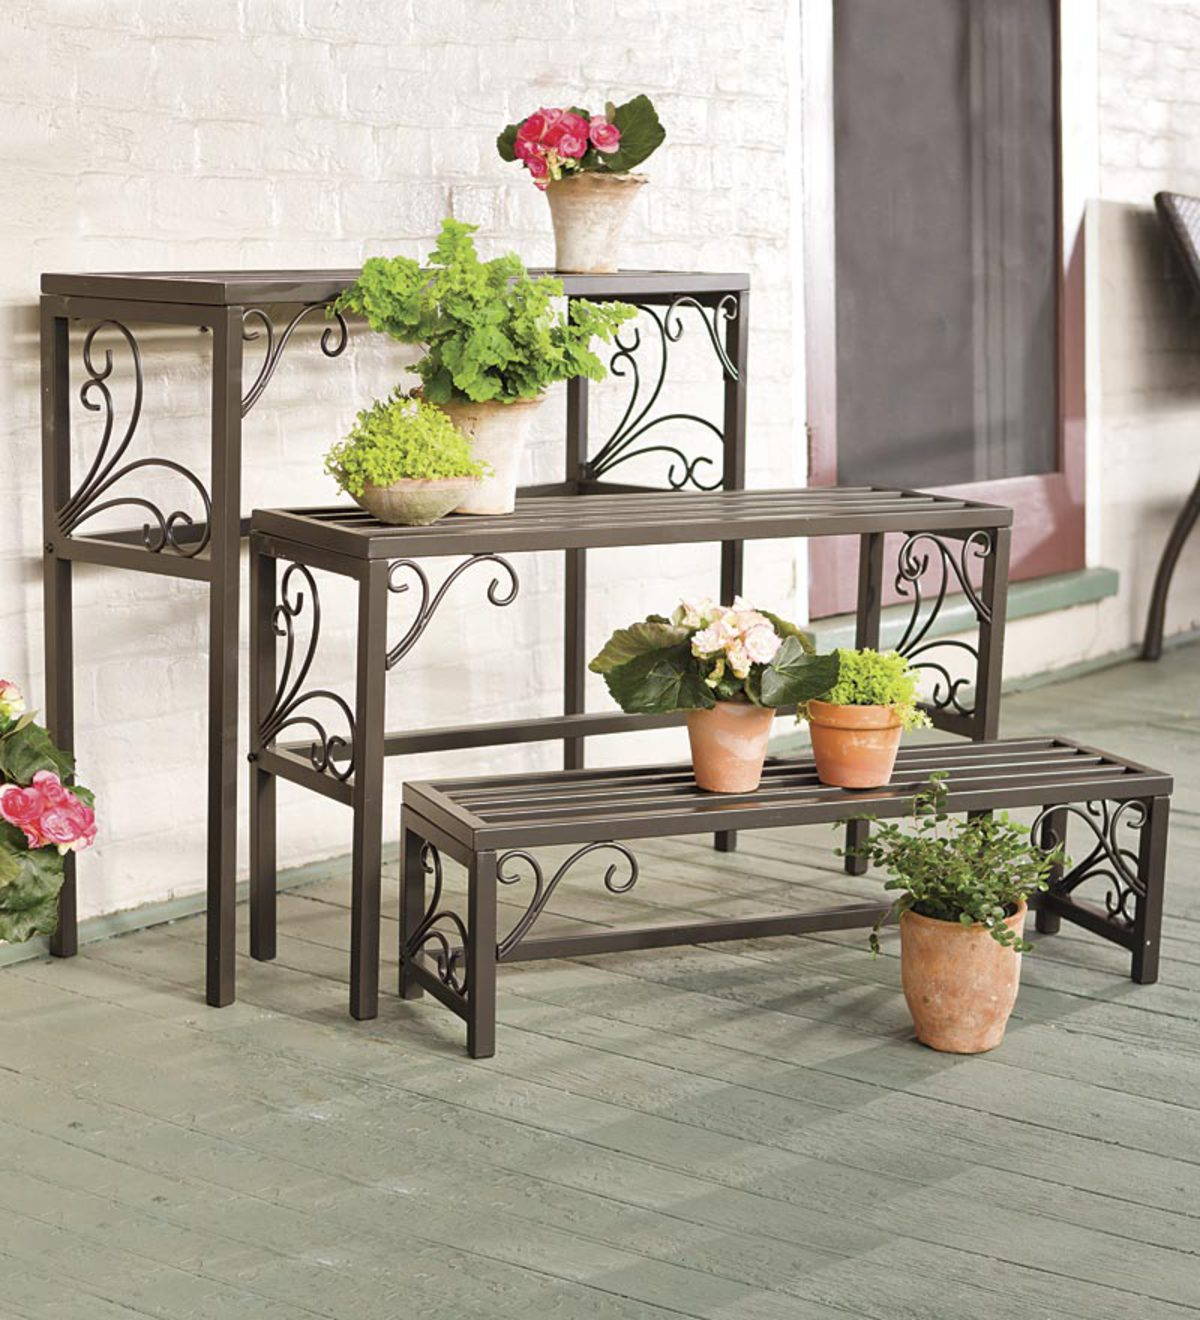 steel plant stands